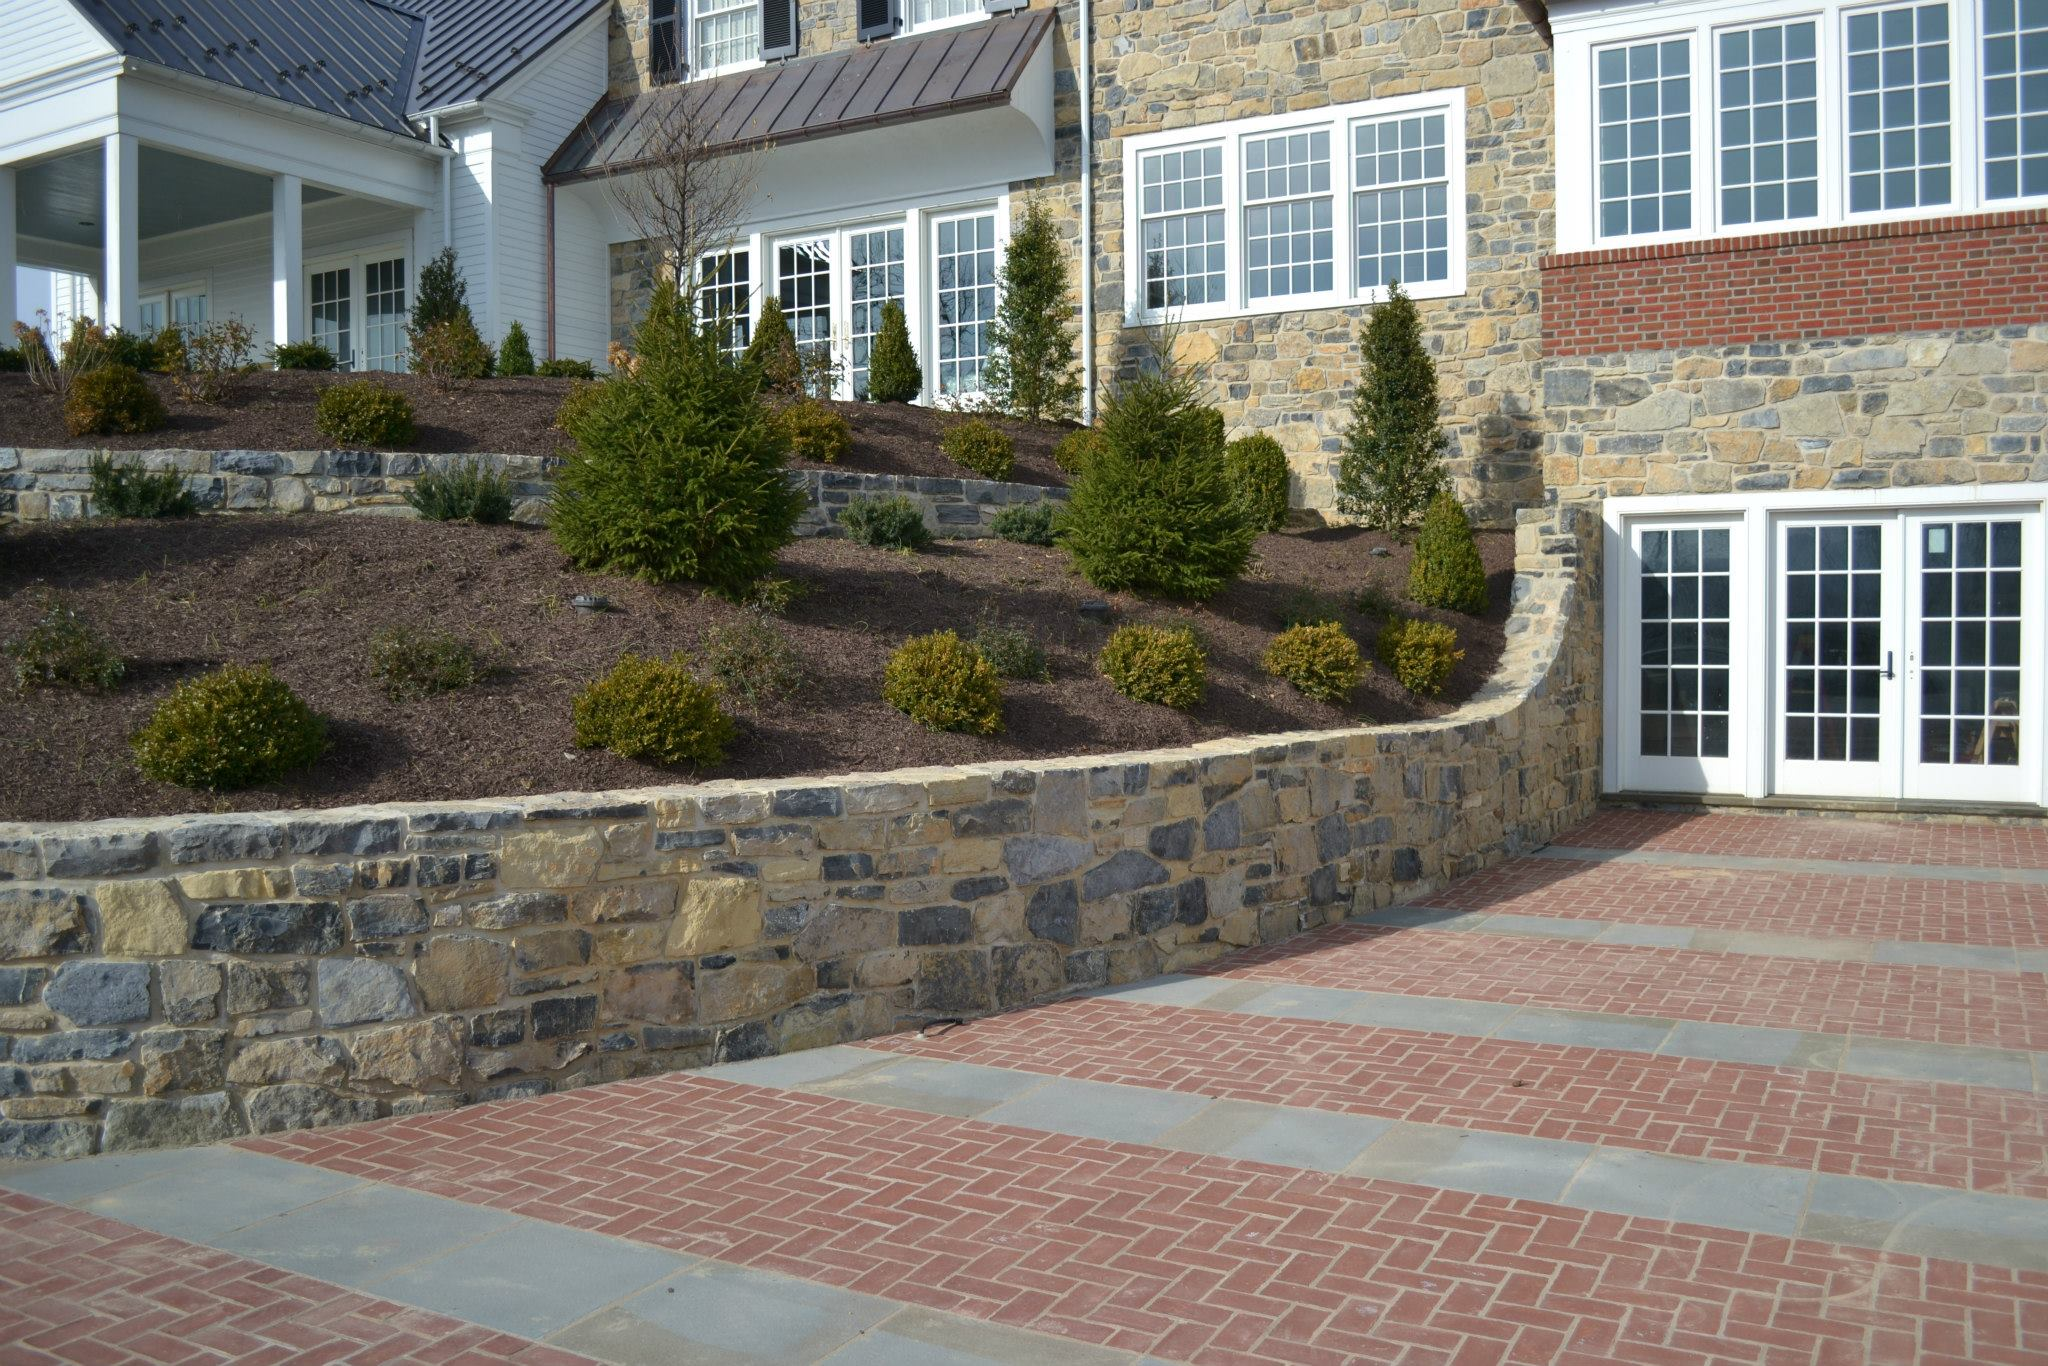 Retaining Wall at the Baylor Residence in Lewisburg, Pennsylvania. Designed by Stephen Lindenmuth.